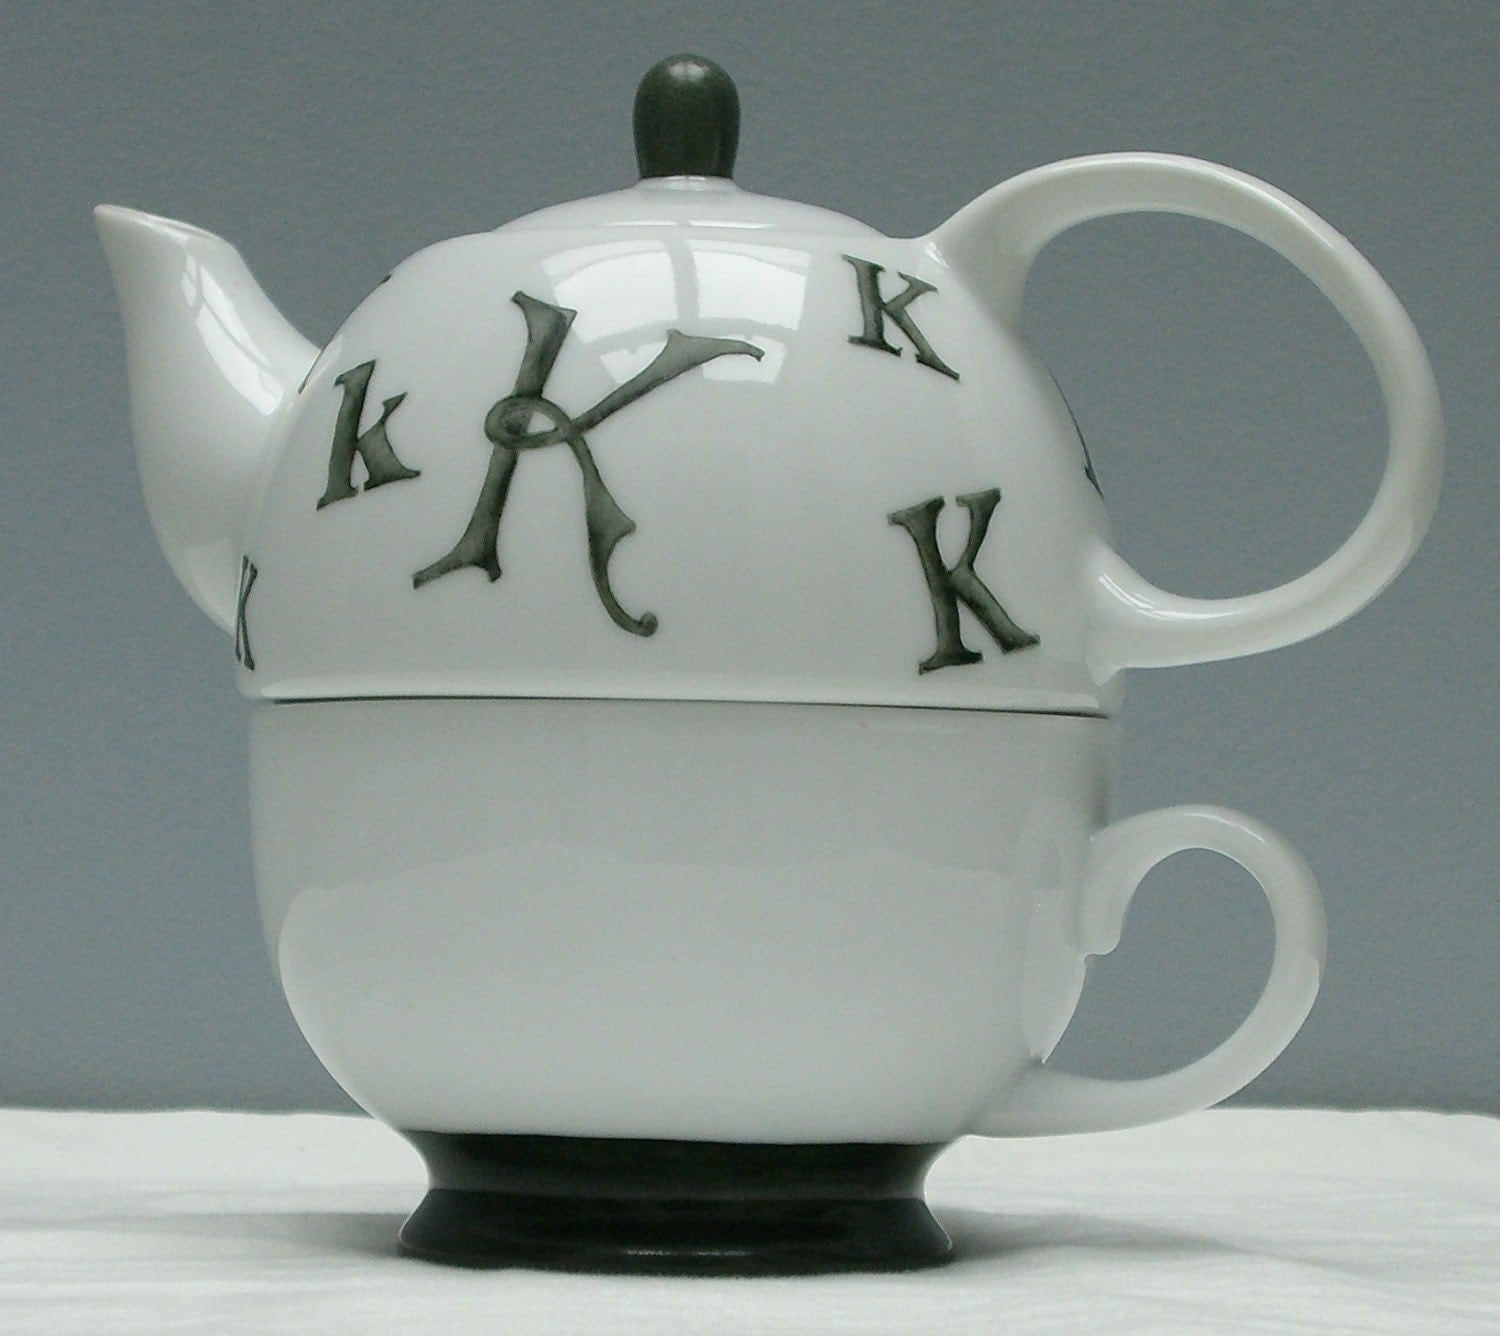 Hand painted porcelain custom  monogrammed personalized tea for one teapot and teacup set